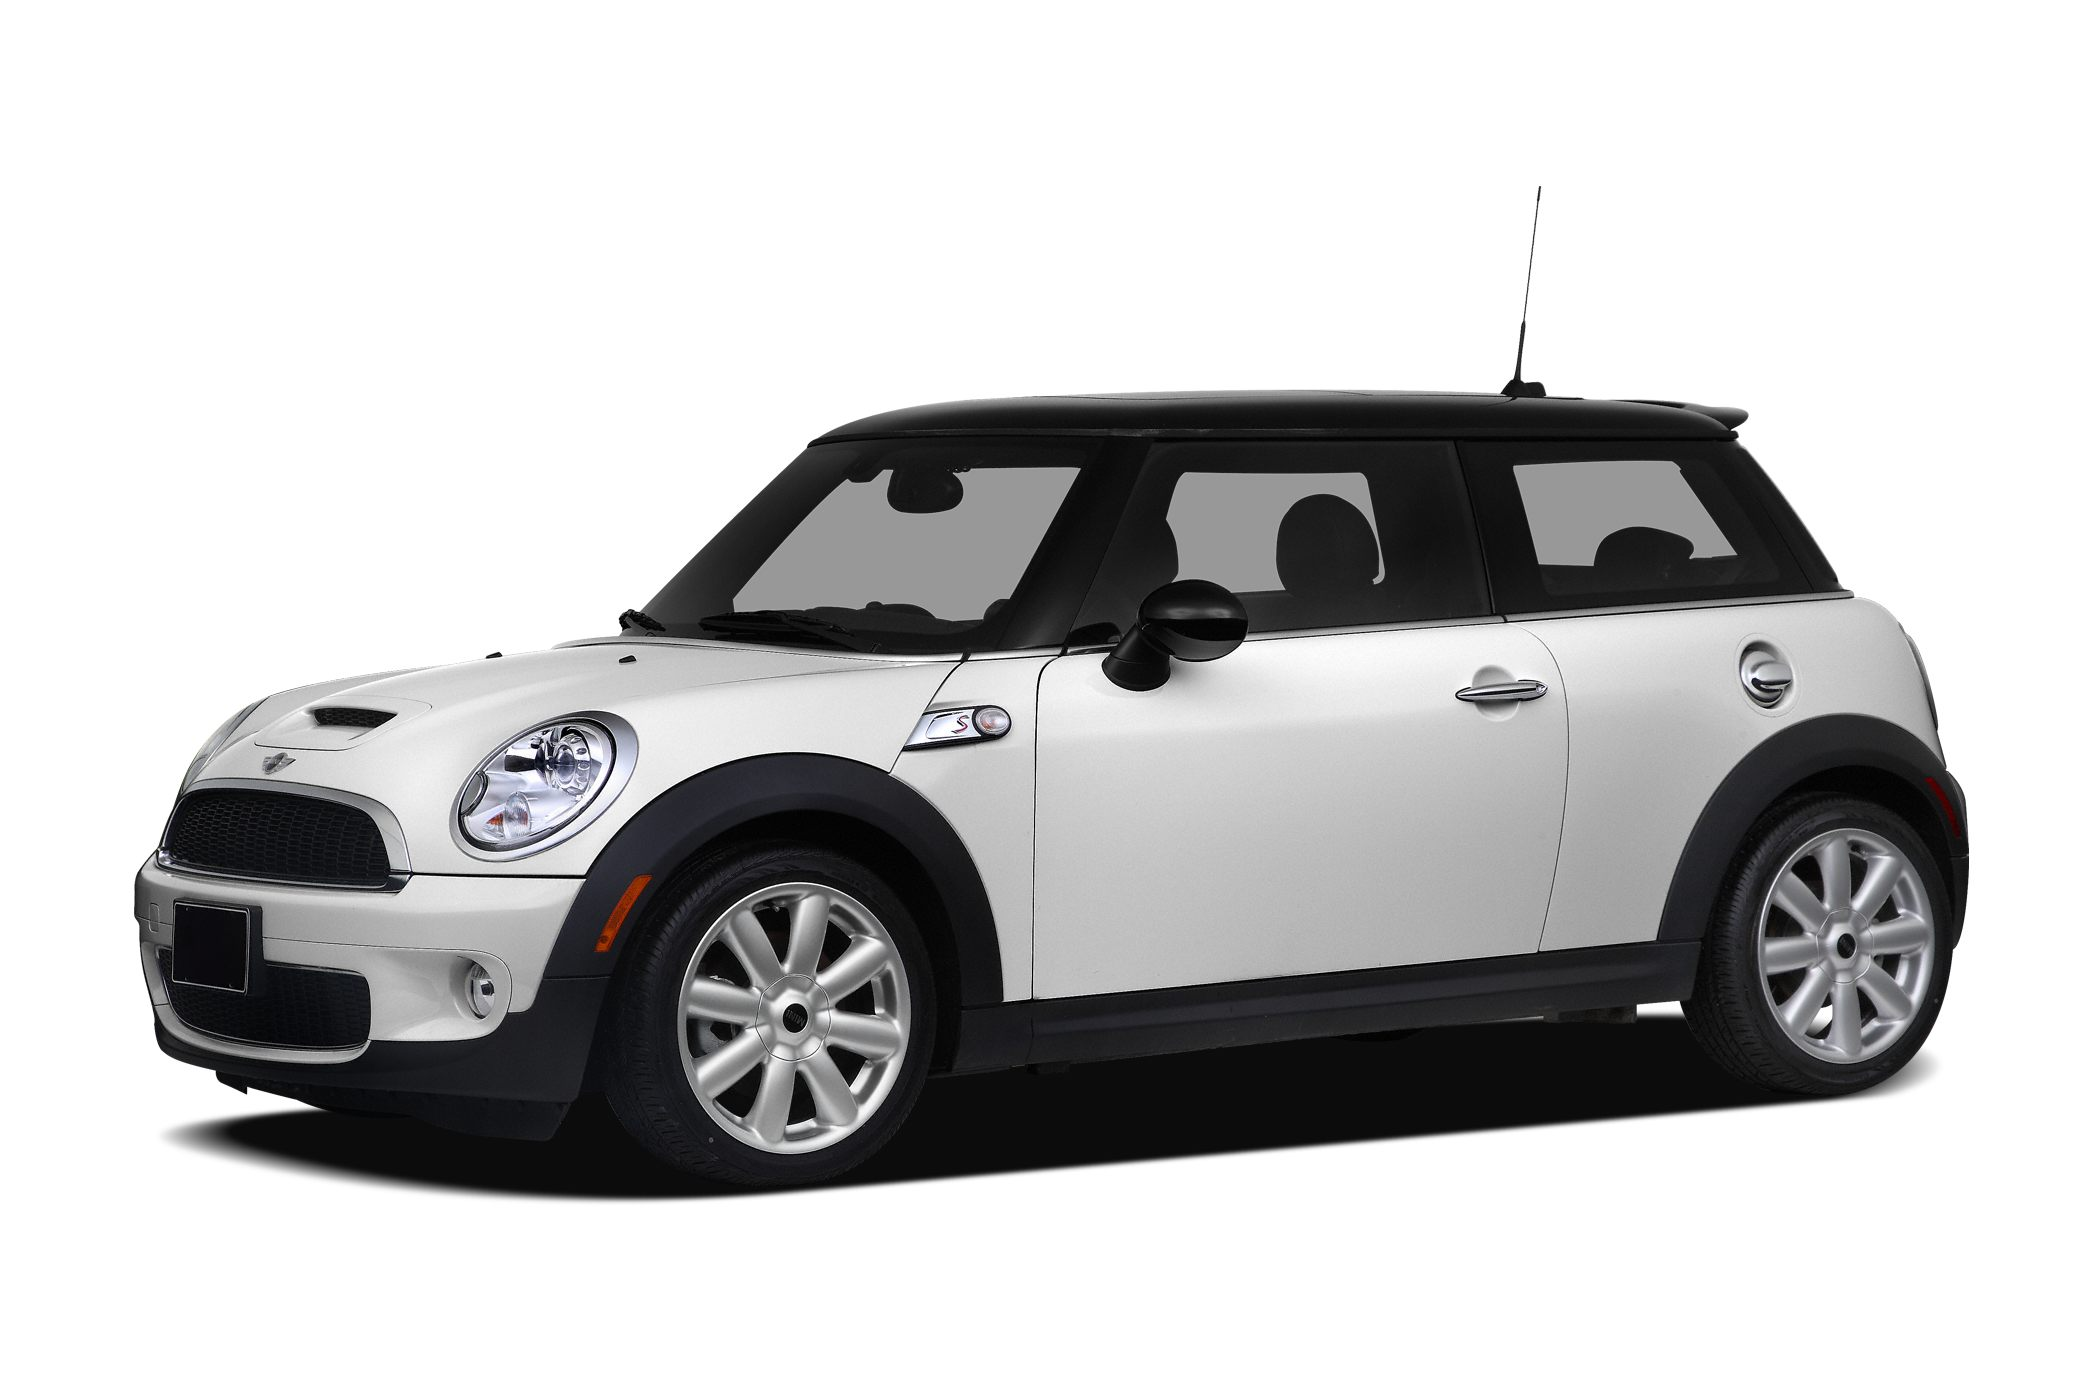 2007 MINI Cooper S Hatchback for sale in Fremont for $13,999 with 41,442 miles.